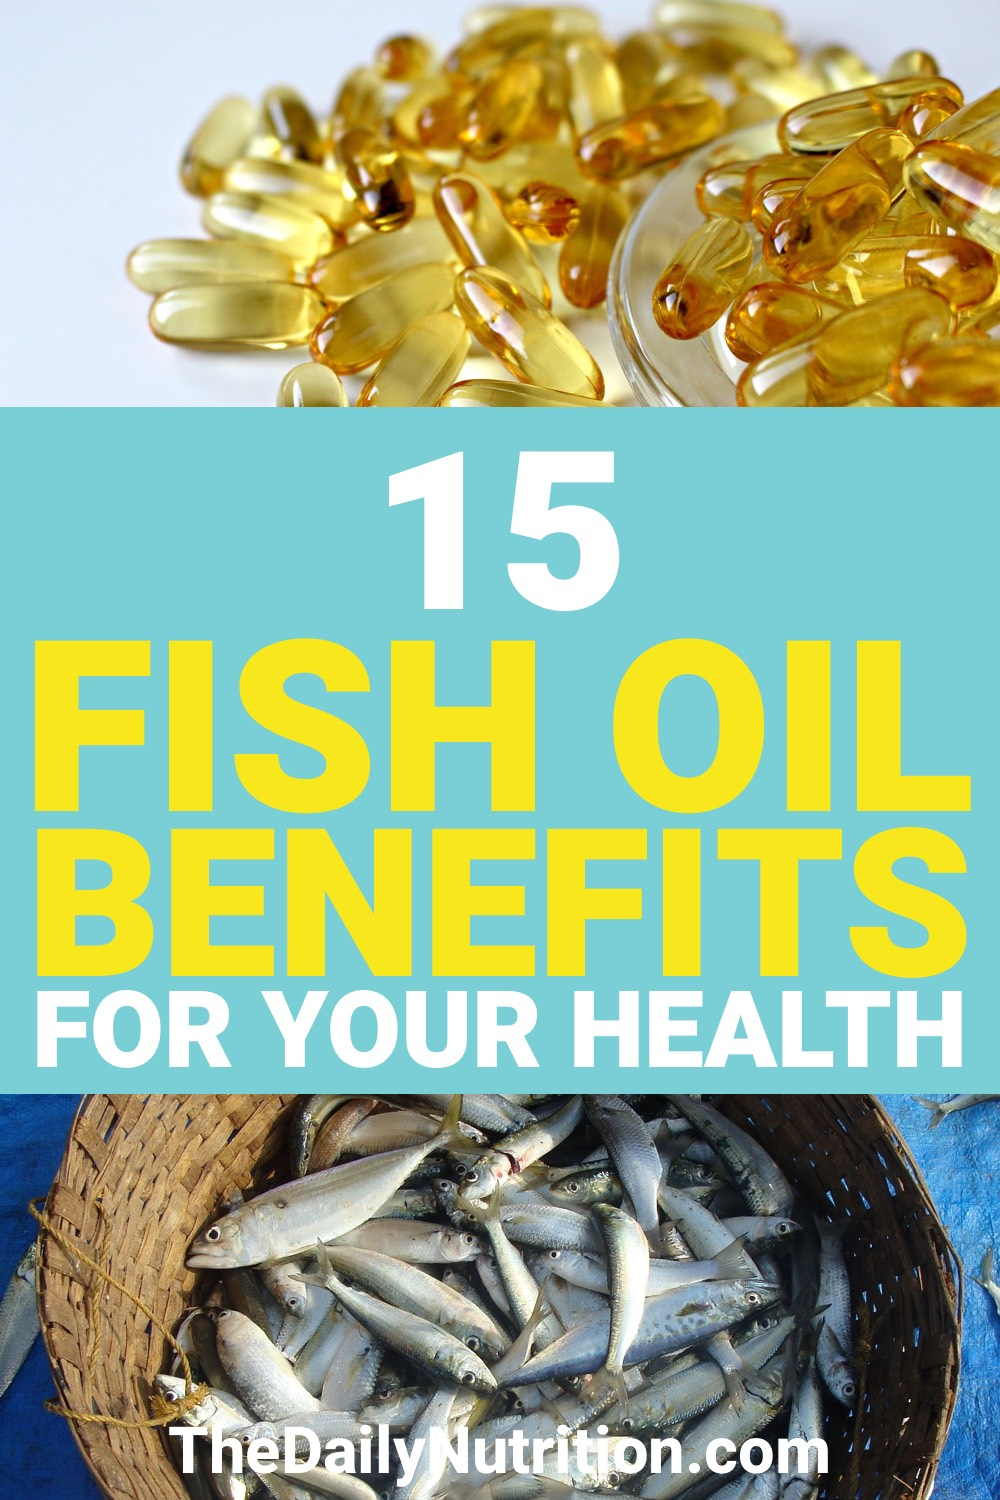 Fish oil is very healthy for you. But what is fish oil good for? Find out here.